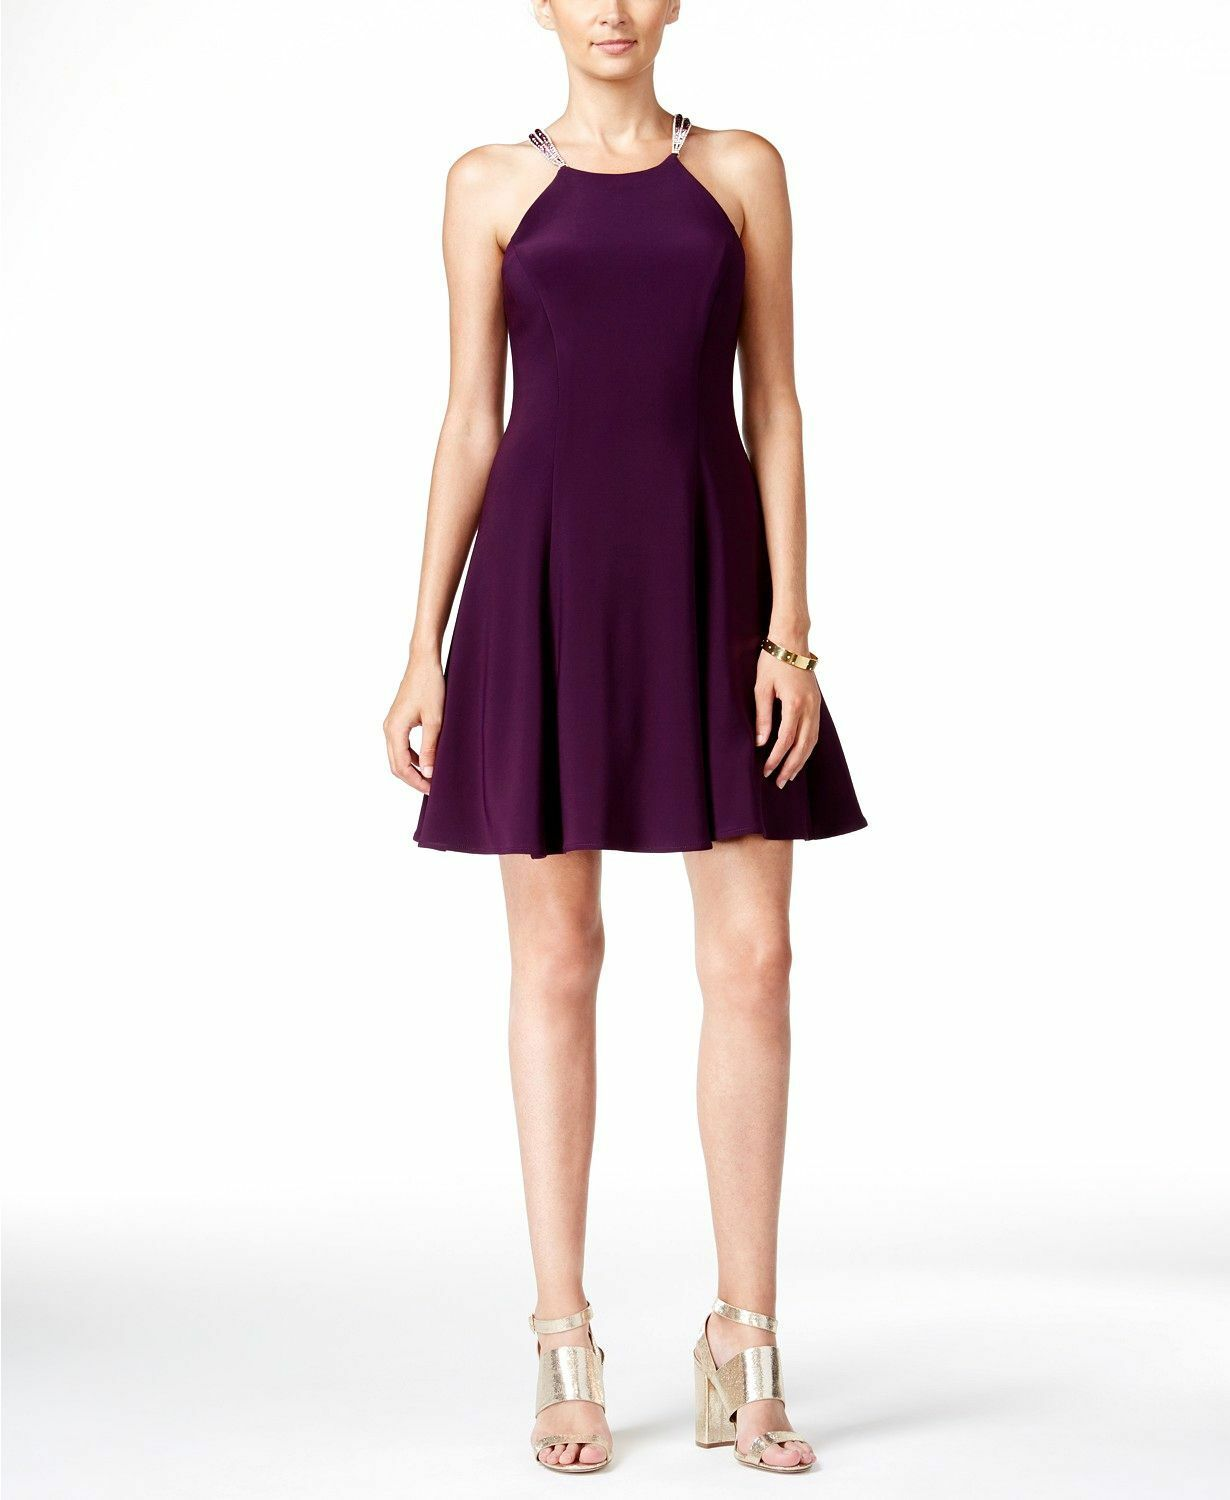 385 BETSY & ADAM WOMEN PURPLE EMBELLISHED FIT & FLARE HALTER GOWN DRESS SIZE 4